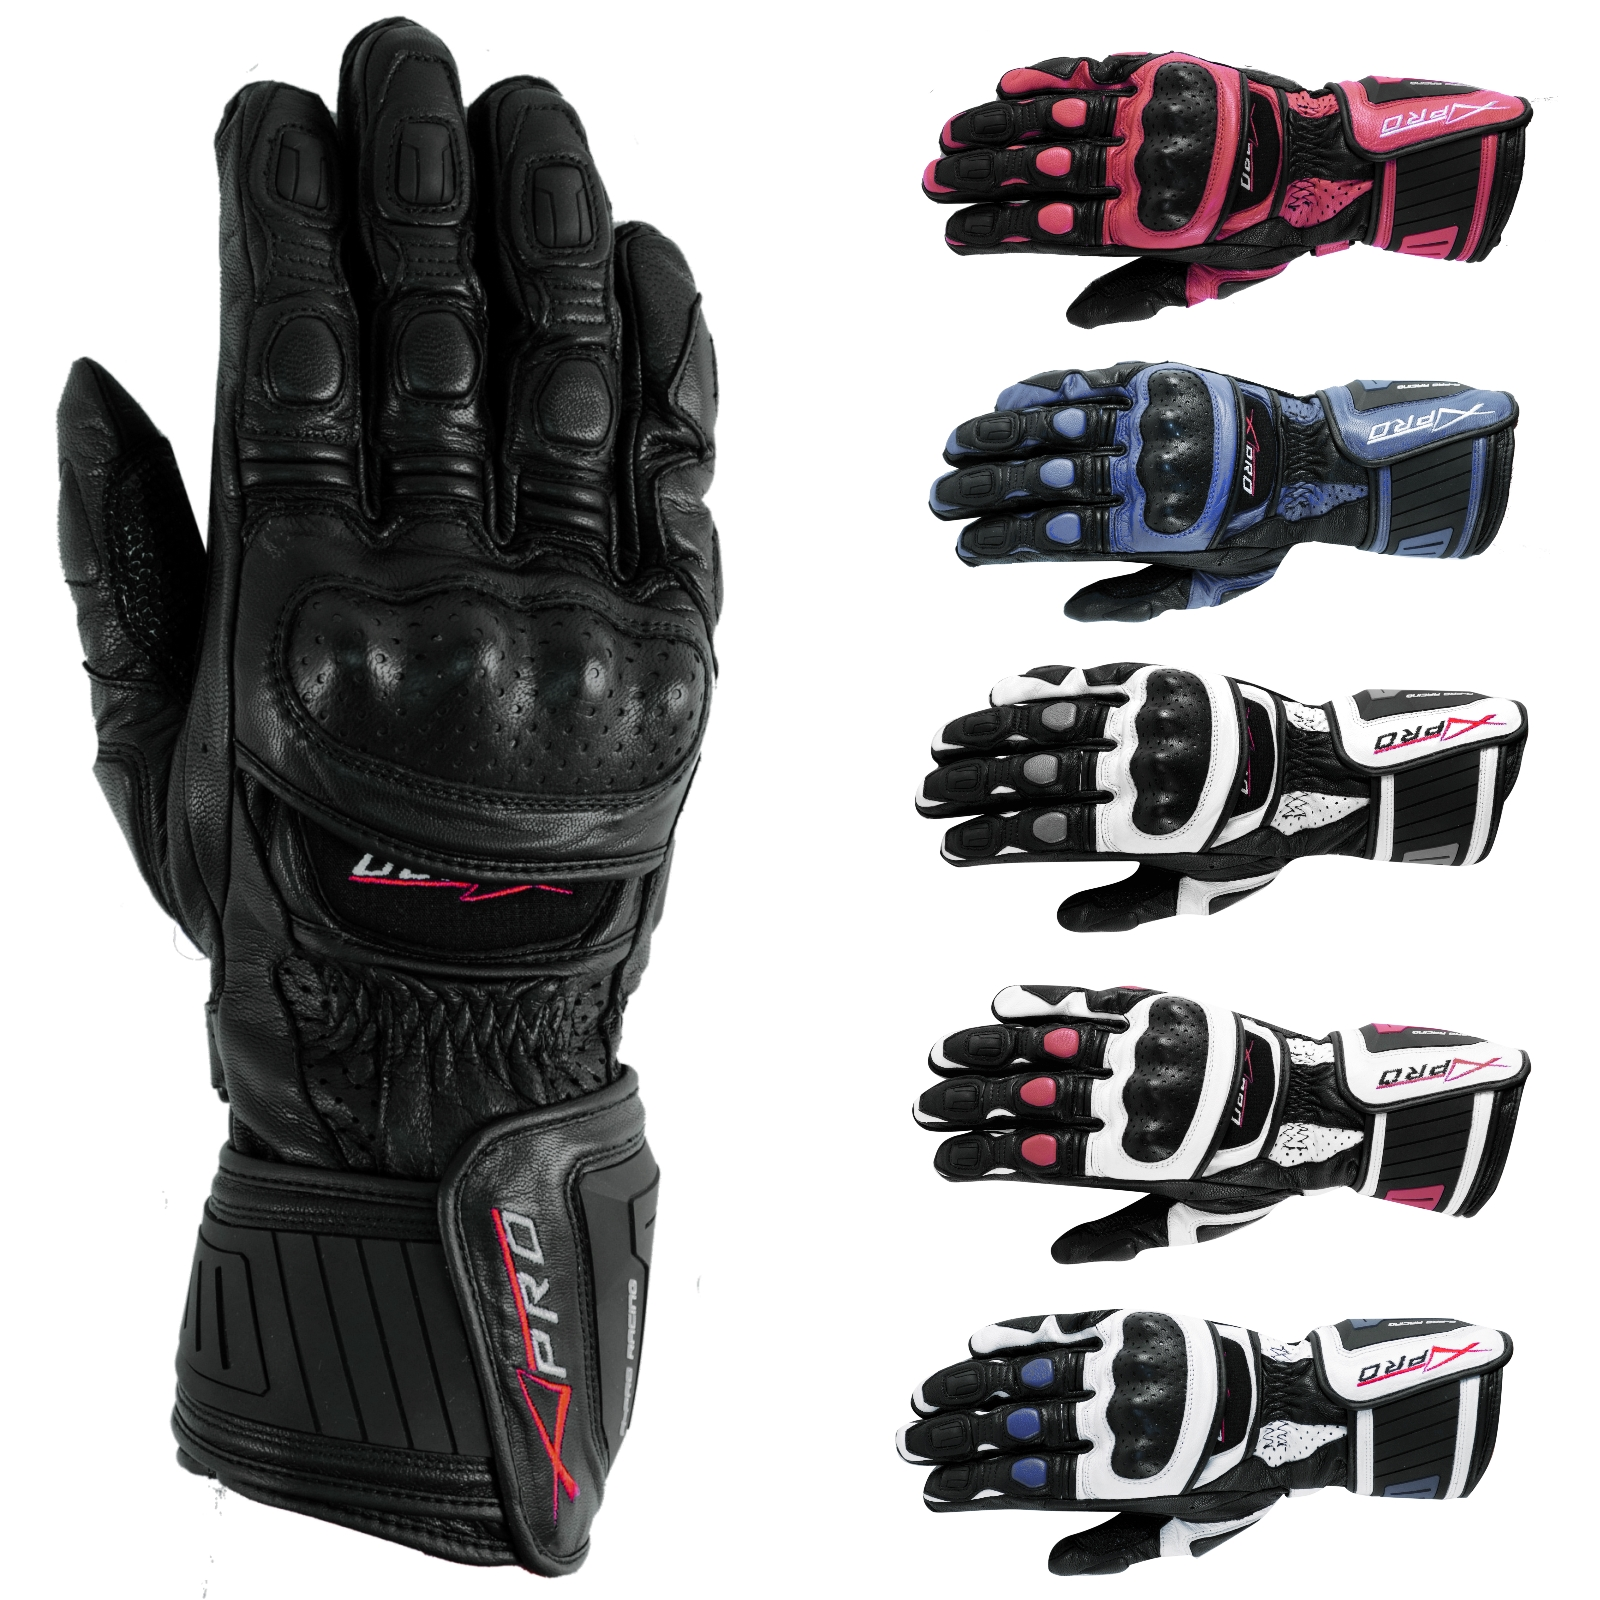 sport piste racing gants moto motard cuir protections phalanges renforc s ebay. Black Bedroom Furniture Sets. Home Design Ideas